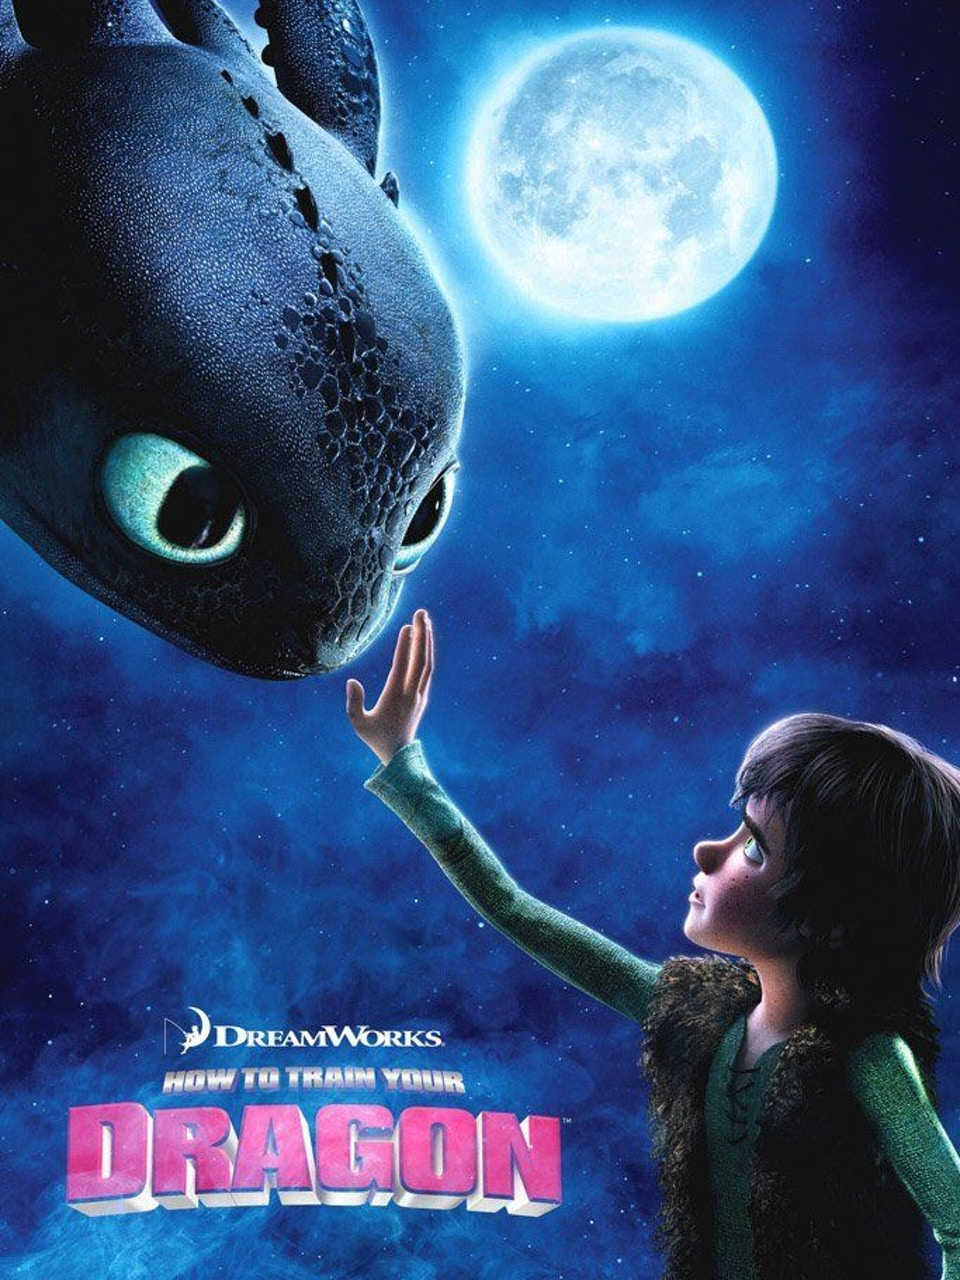 How To Train Your Dragon (Dreamworks)